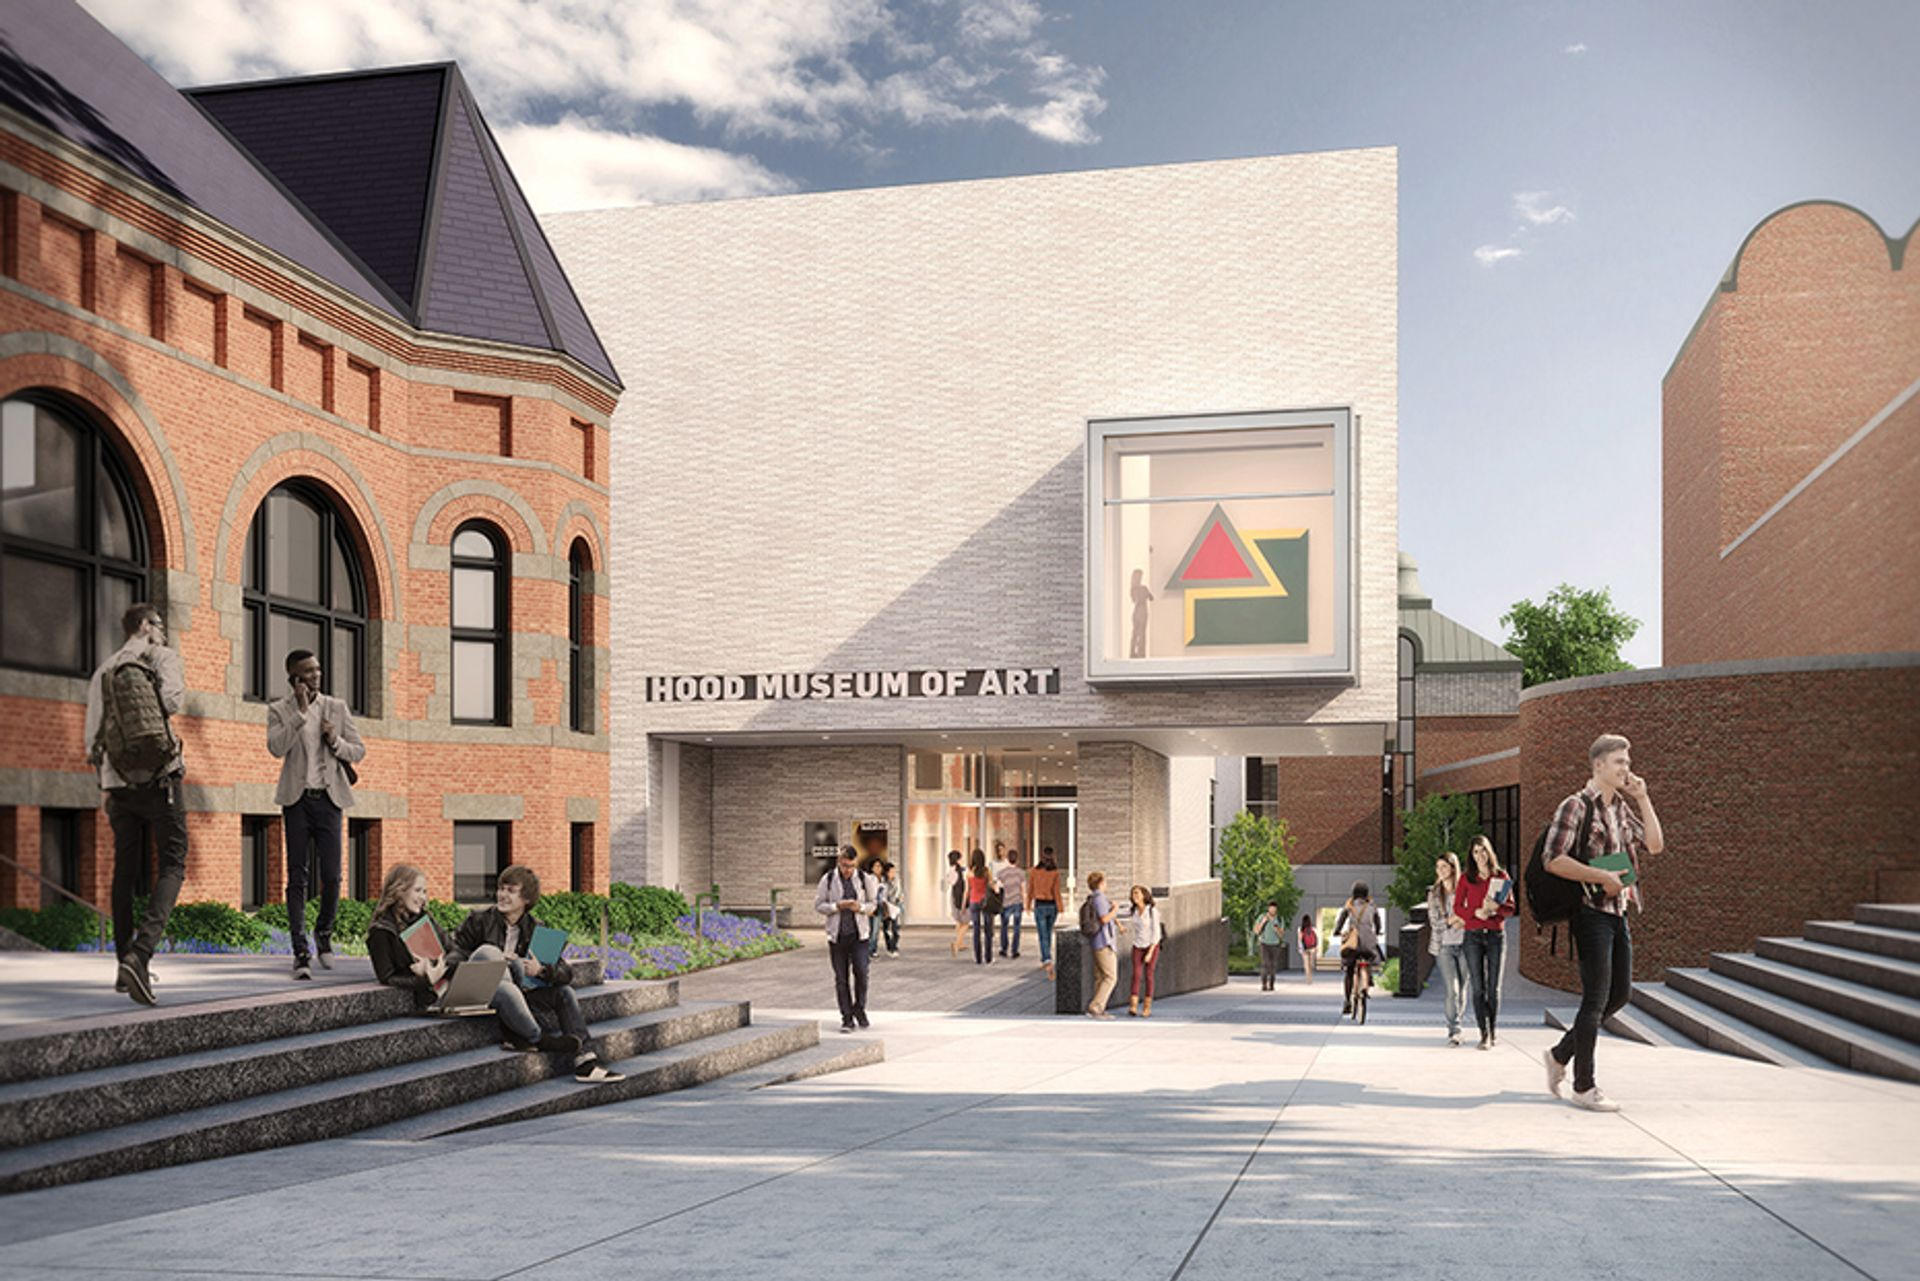 The Hood museum's expansion includes six new gallery spaces. Rendering by MARCH